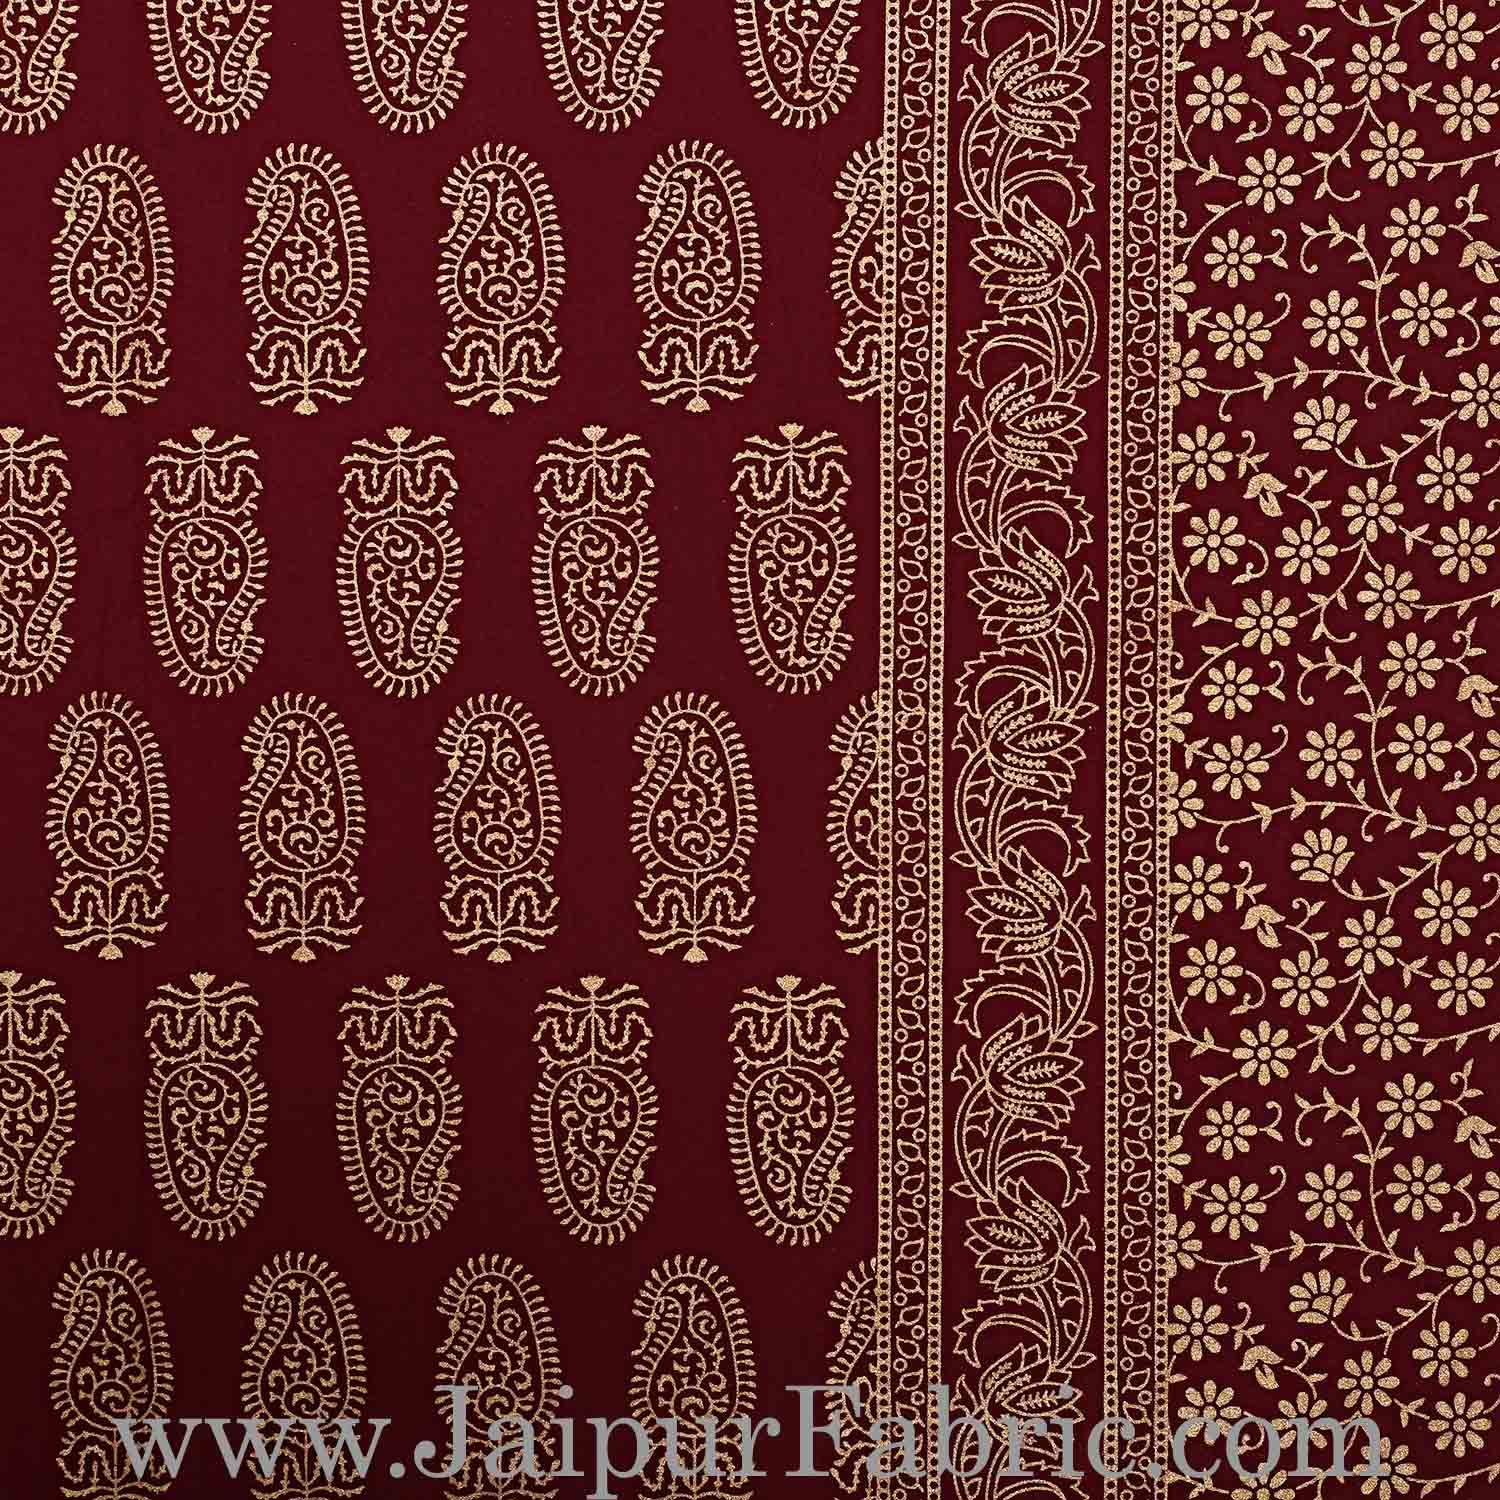 Double Bed Sheet With Shining Gold Print Maroon Base Gold Kerry Pattern Super Fine Cotton